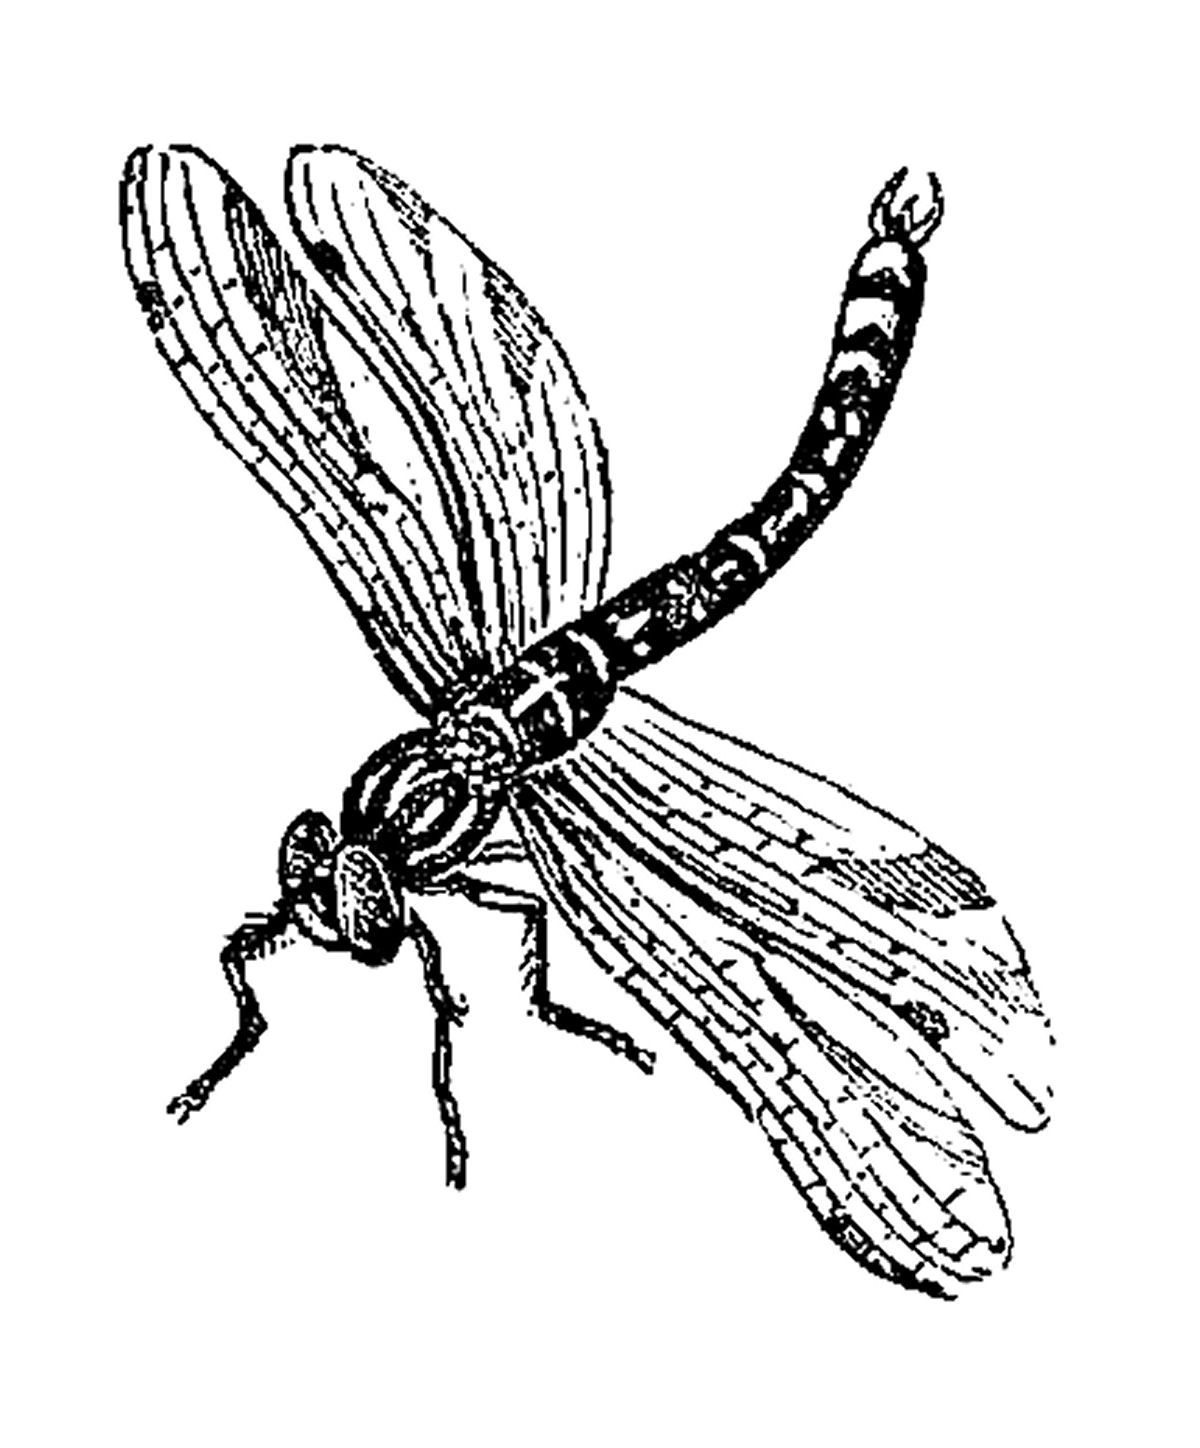 Image Result For Dragonfly Drawings Clip Art Dragonfly Drawing Dragonfly Clipart